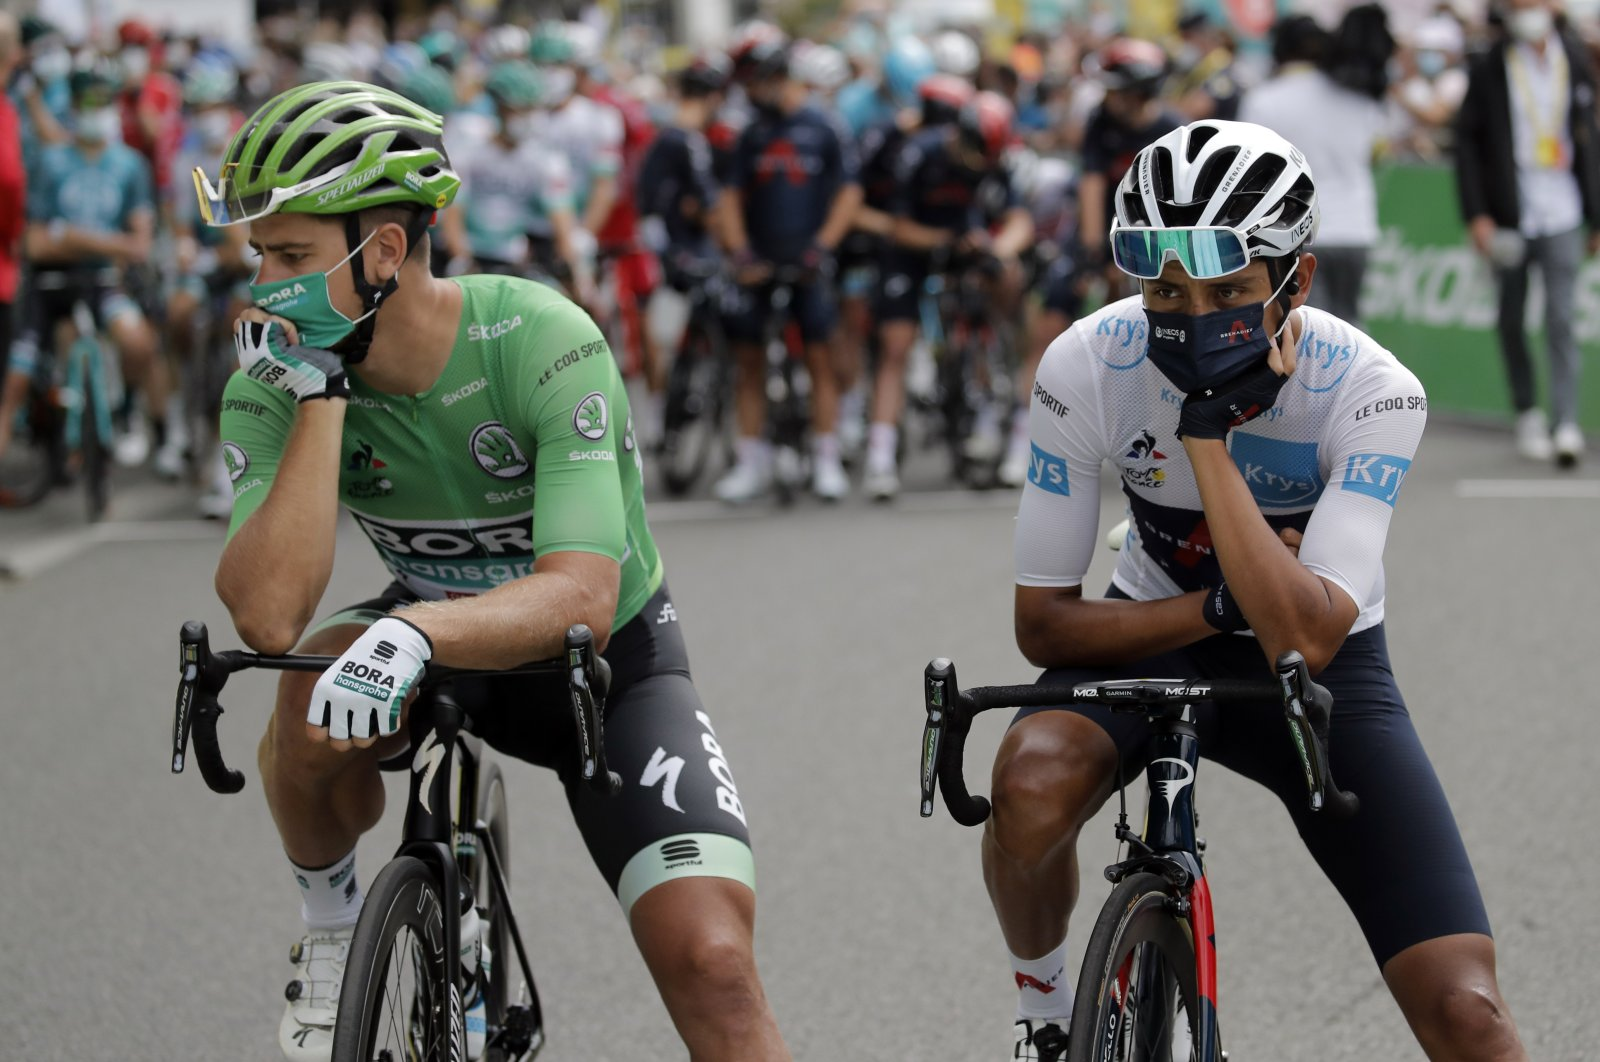 Colombia's Egan Bernal (R) and Slovakia's Peter Sagan wait prior to the start line of the ninth stage of the Tour de France cycling race in Pau, France, Sept. 6, 2020. (AP Photo)